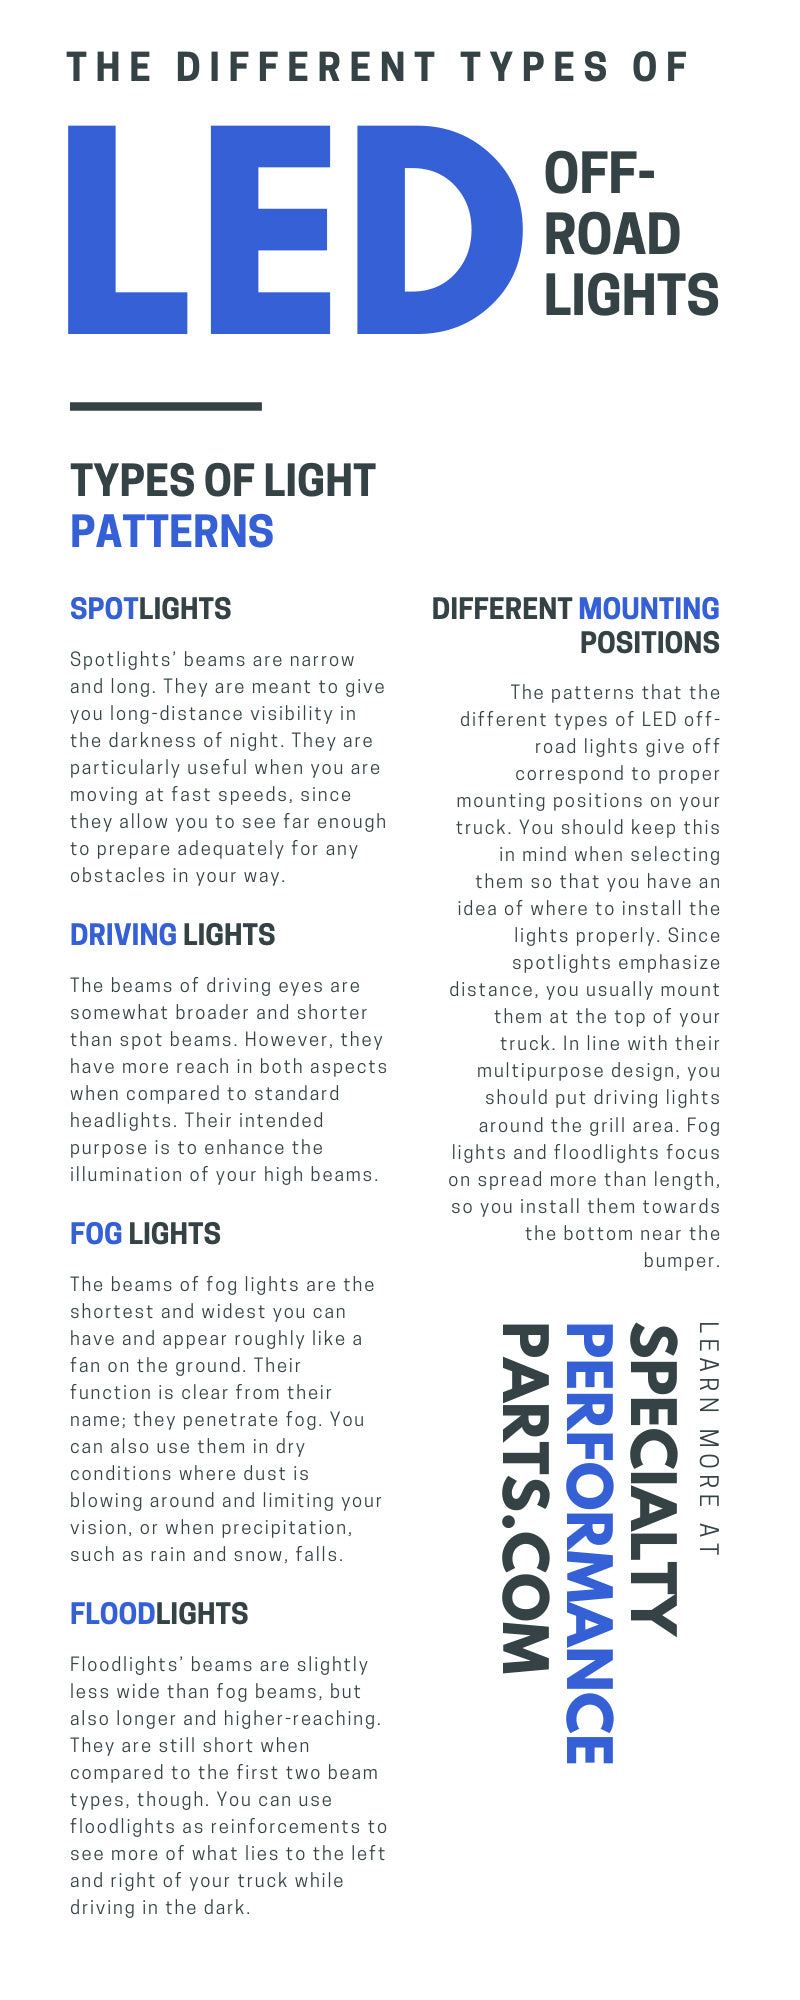 The Different Types of LED Off-Road Lights